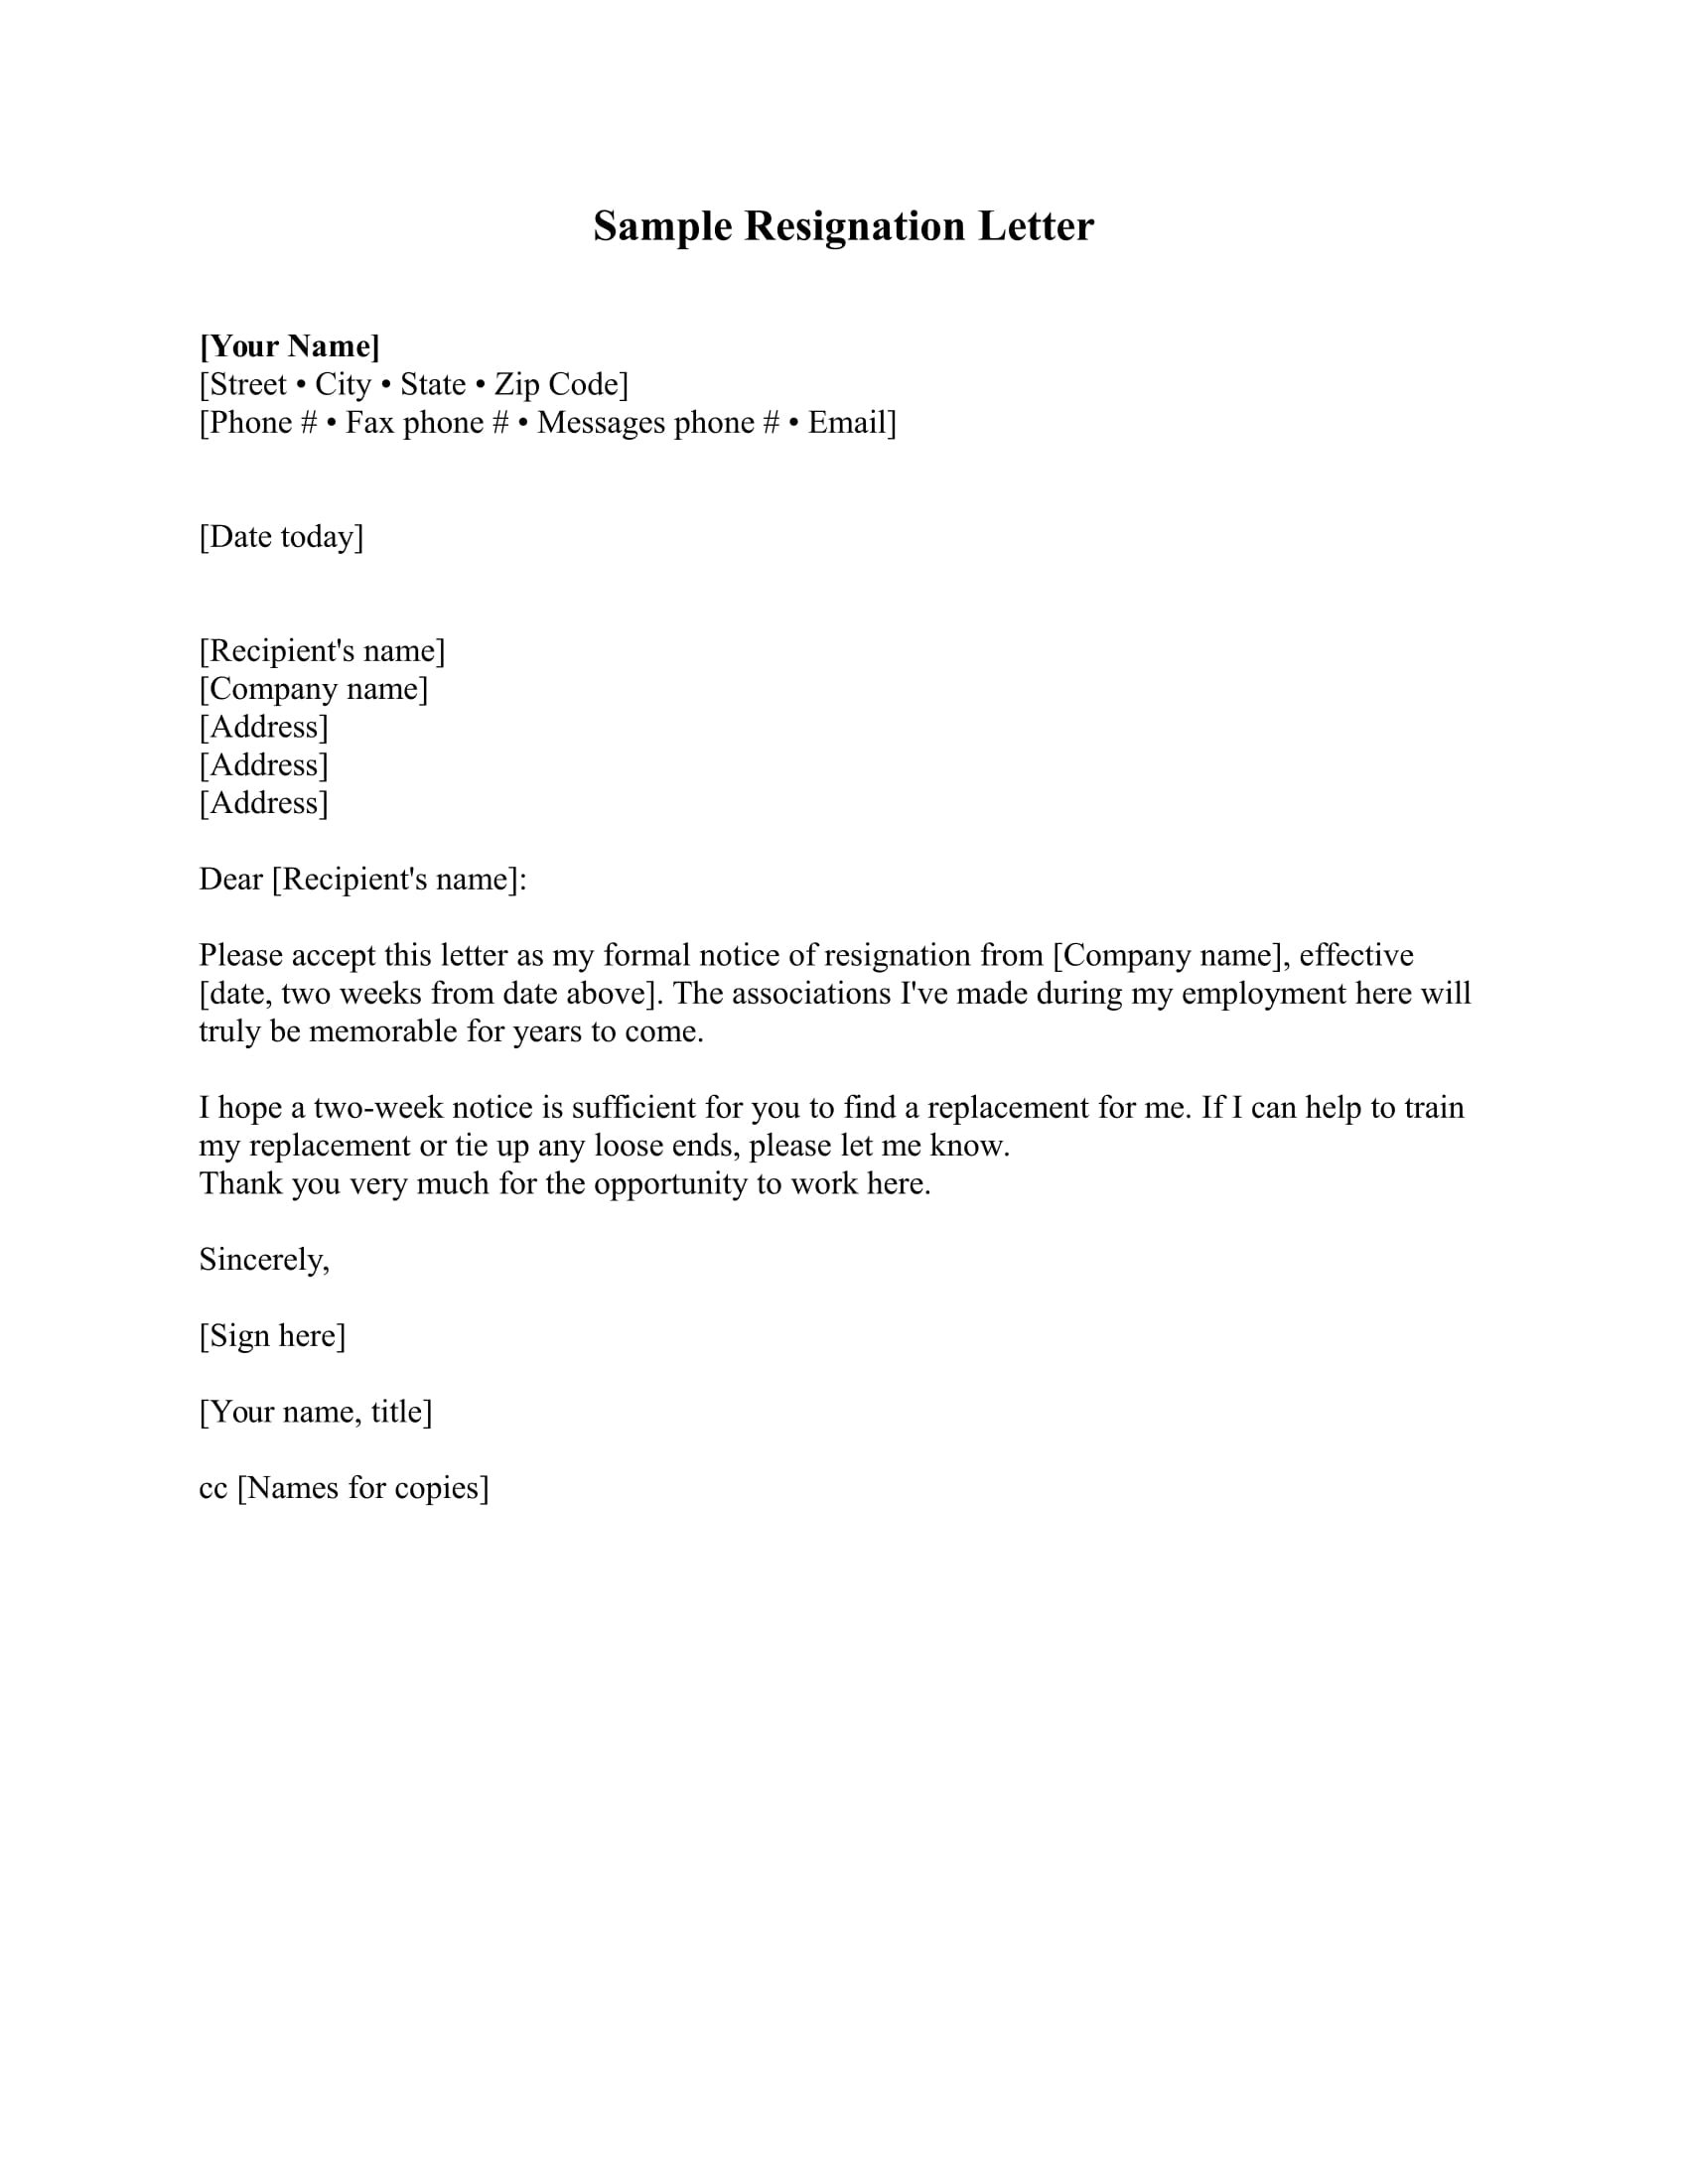 Standard Resignation Letter Examples  Pdf Word  Examples In Resignation Letter Template Pdf